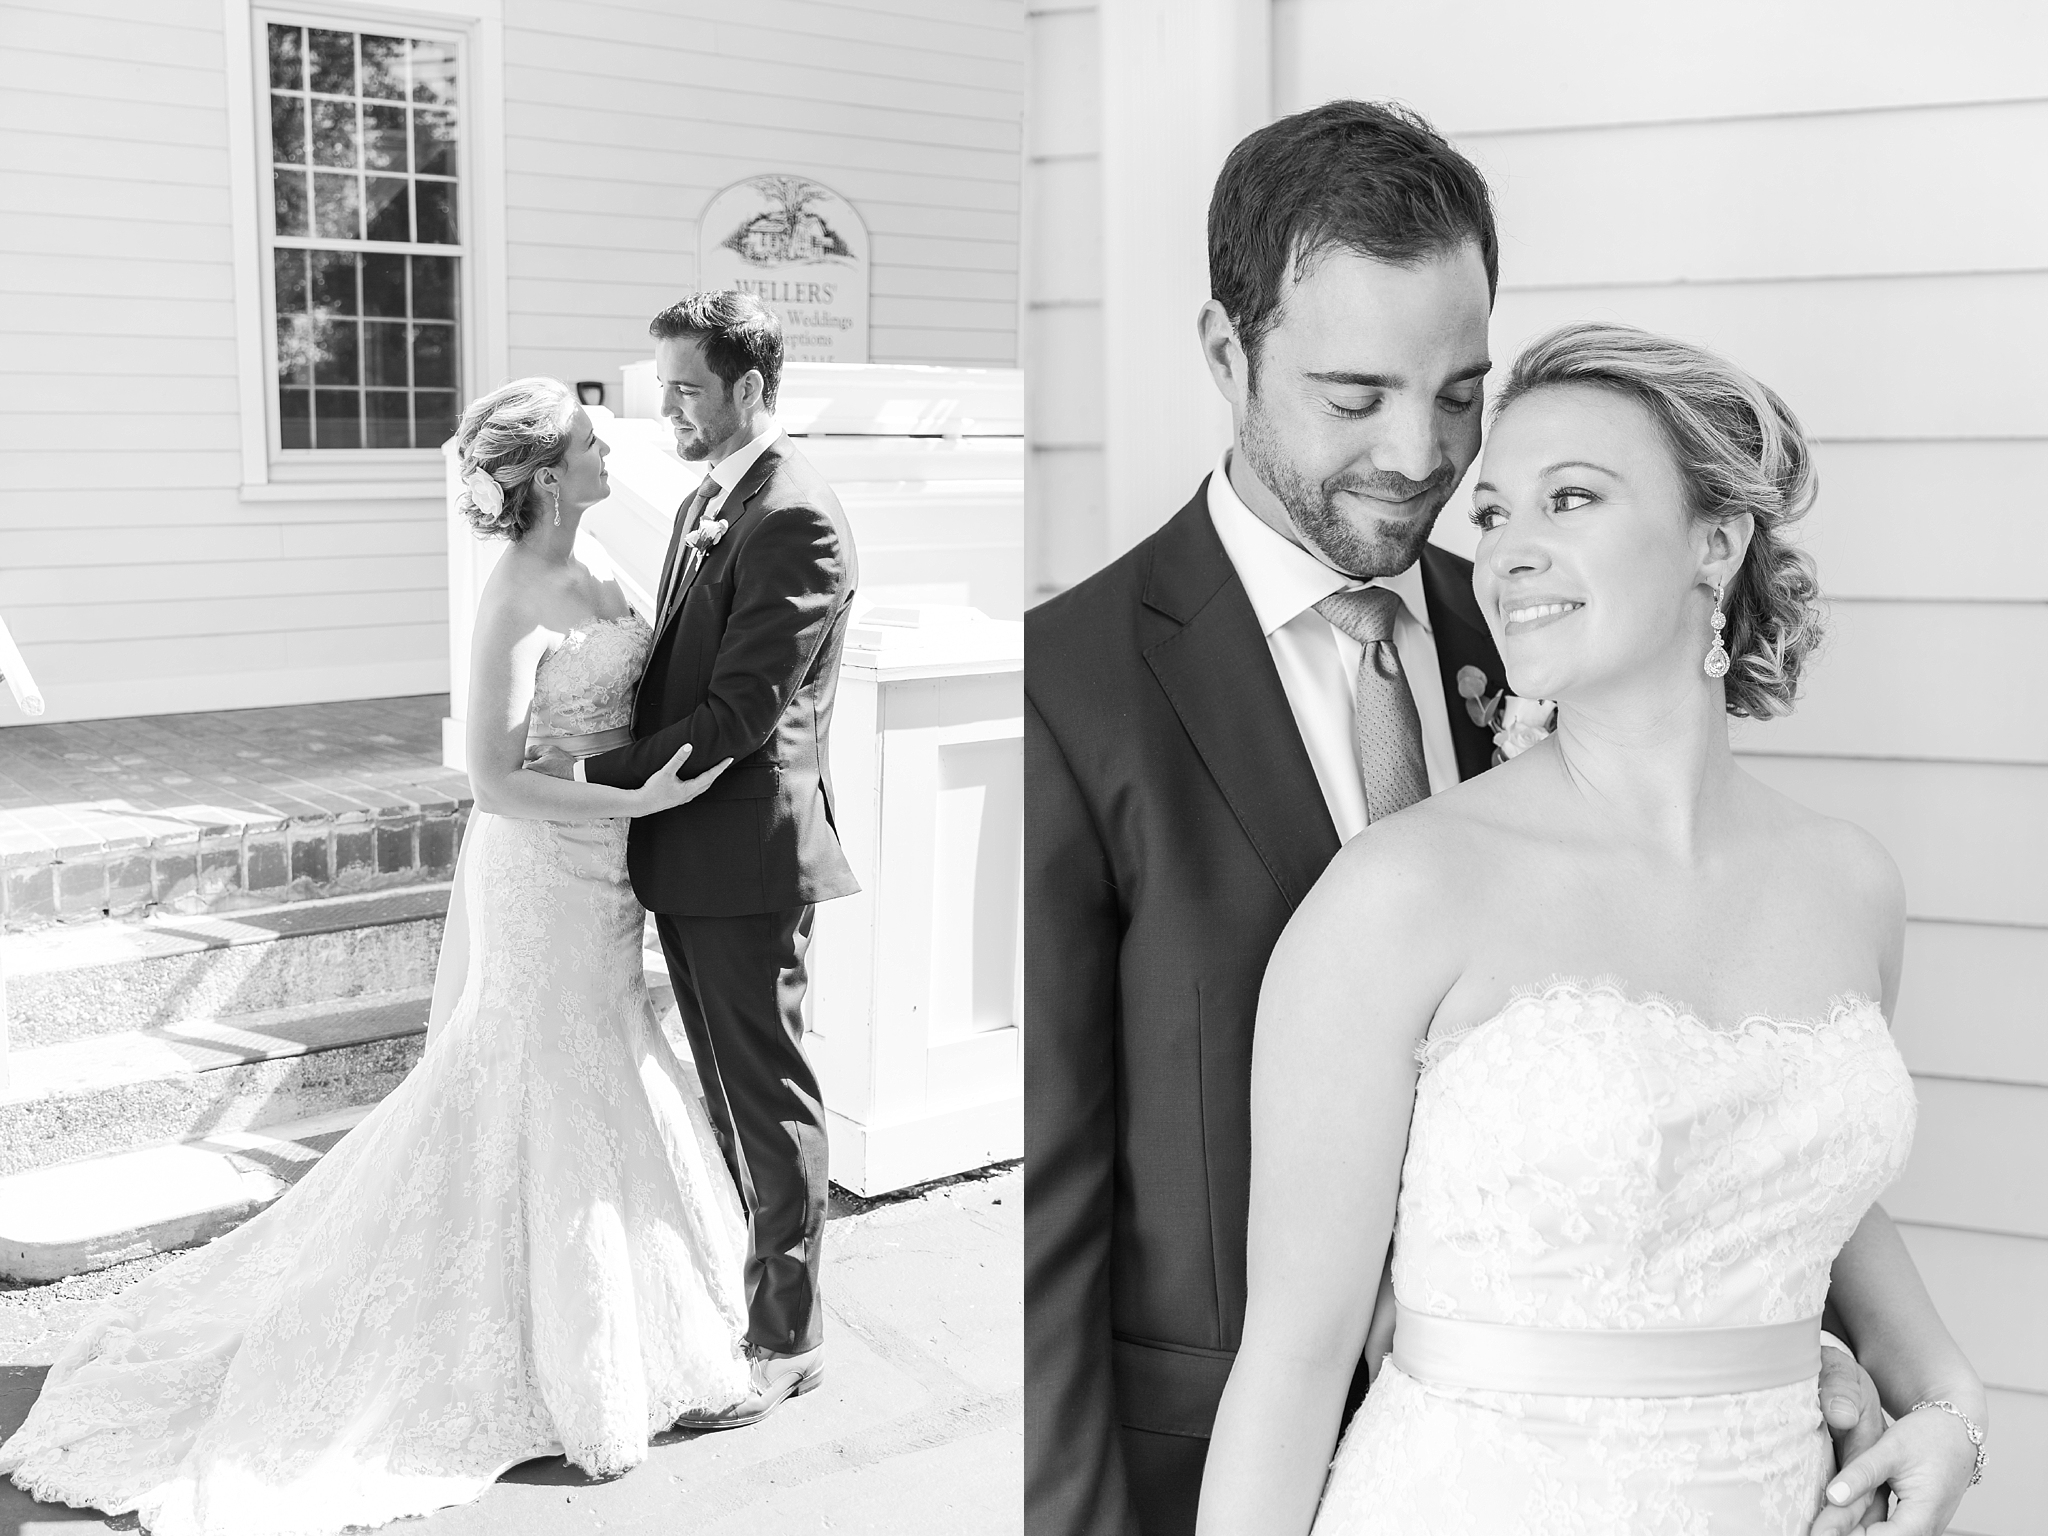 fun-candid-laid-back-wedding-photos-at-wellers-carriage-house-in-saline-michigan-and-at-the-eagle-crest-golf-resort-by-courtney-carolyn-photography_0051.jpg